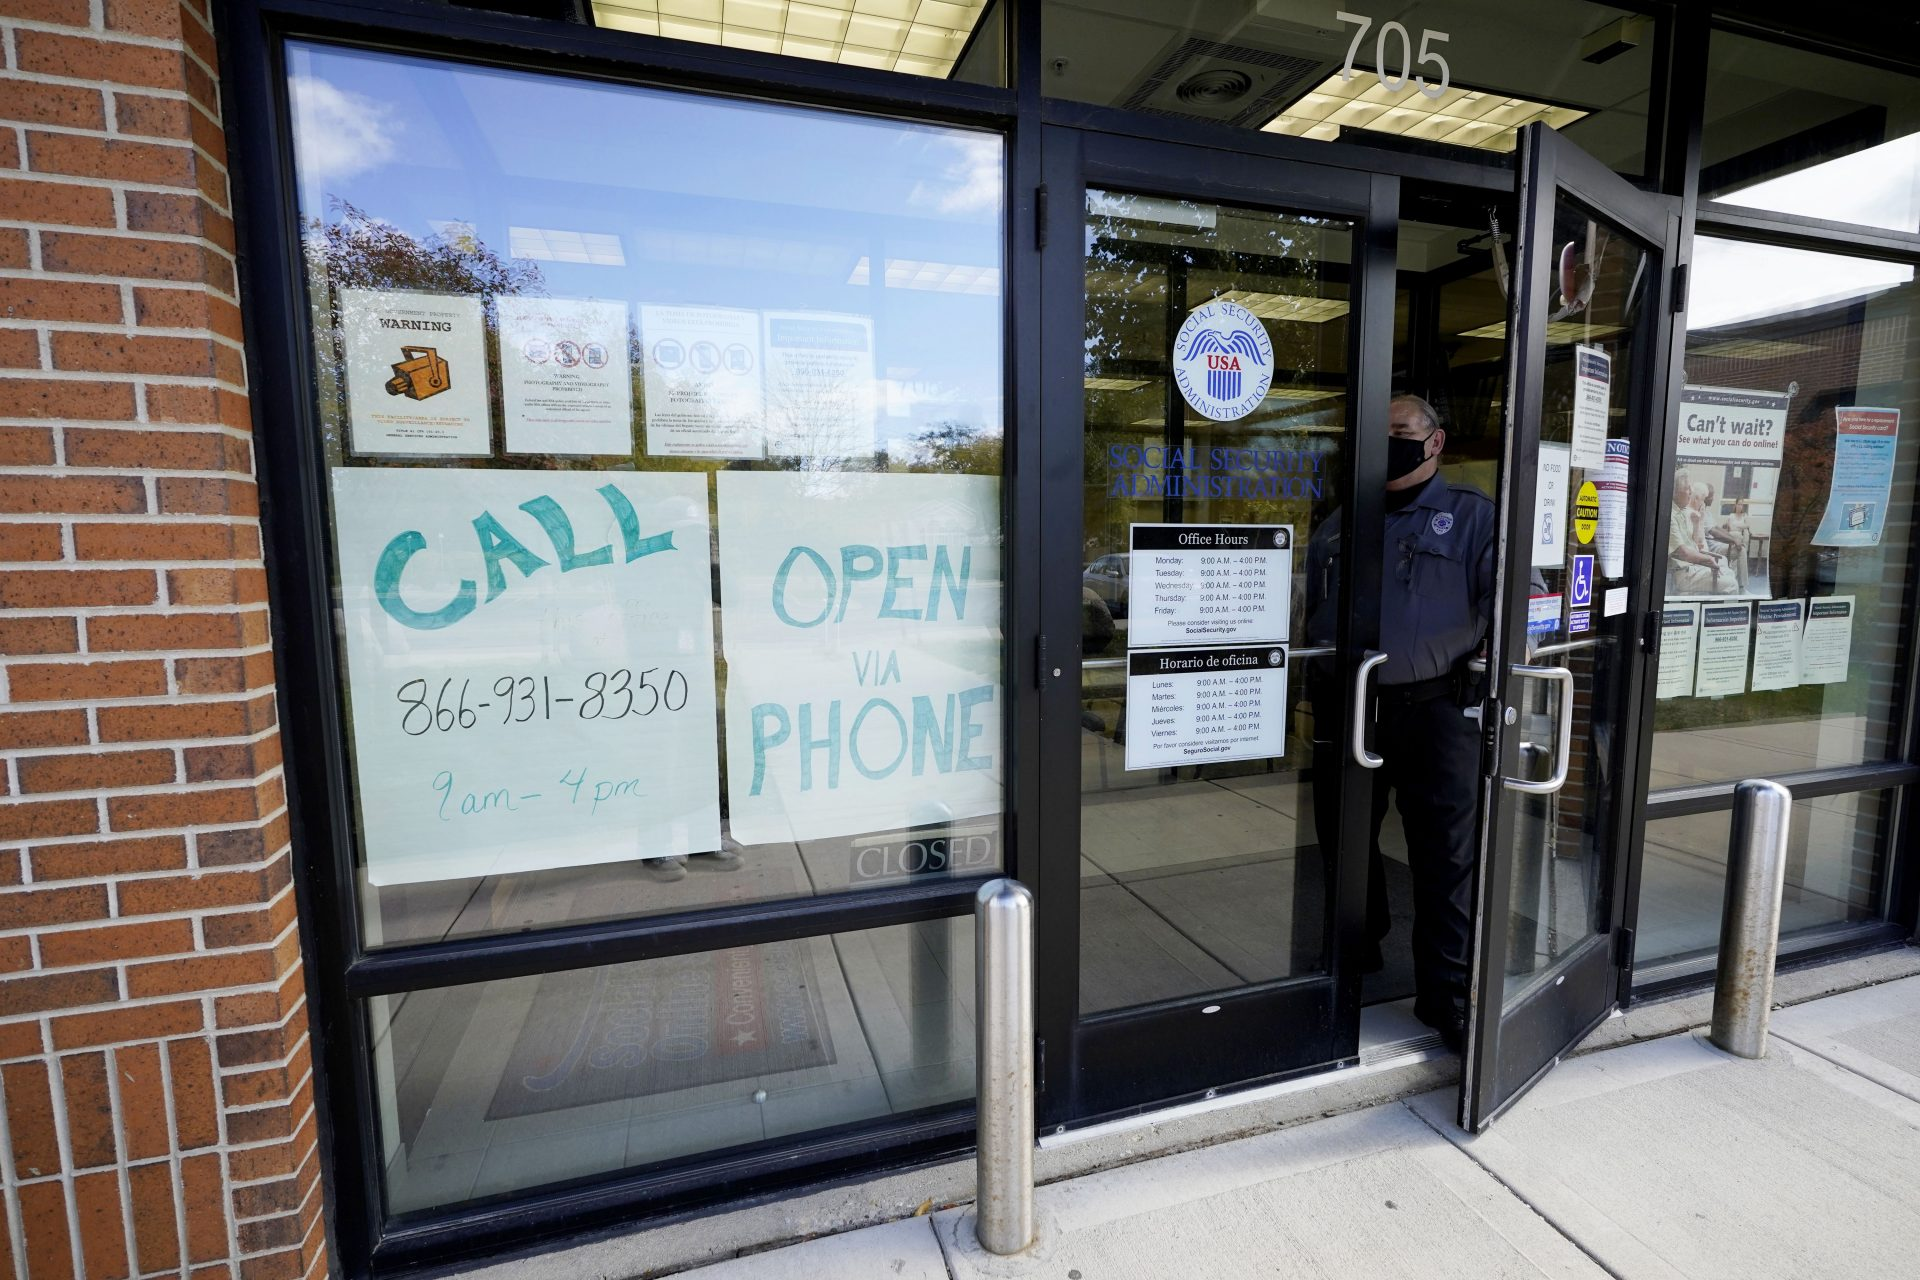 Information signs are displayed as a security guard closed a door at a U.S. Social Security Administration office in Mount Prospect, Ill., Thursday, Oct. 15, 2020. The Social Security Administration announced that retirees will get an increased Social Security benefit in 2021.